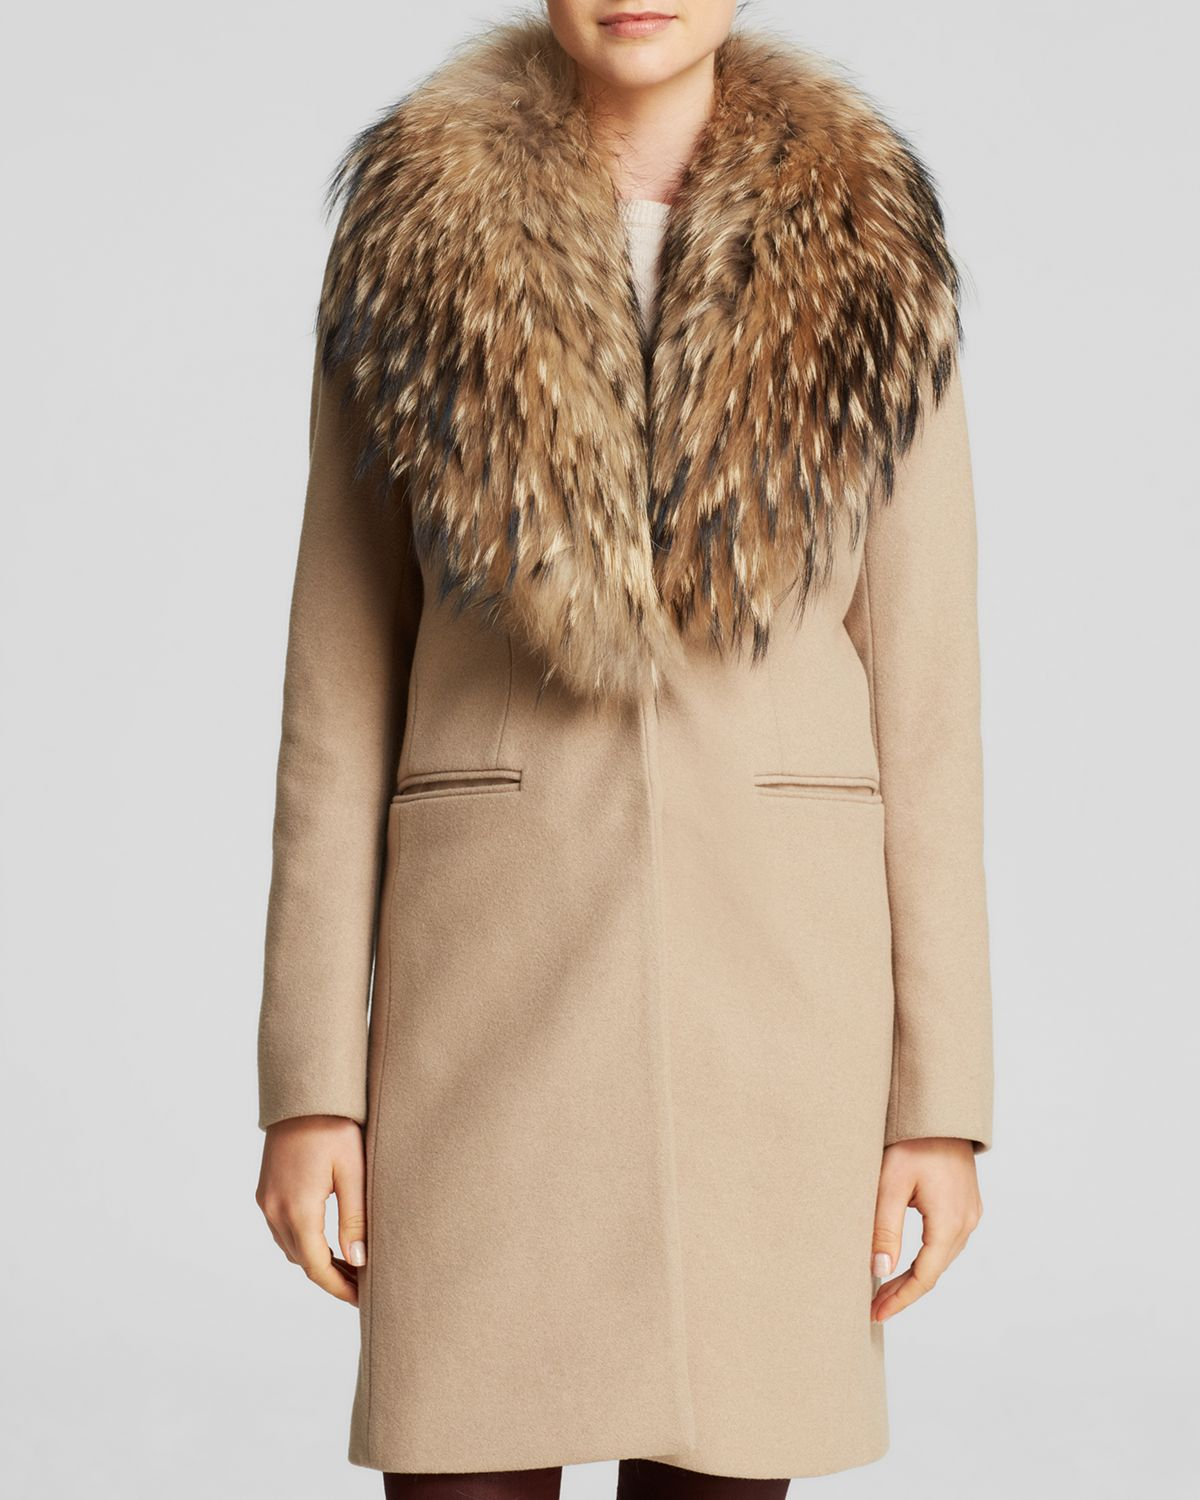 Sam Crosby Wool Coat With Fur Trim In Brown Camel Lyst